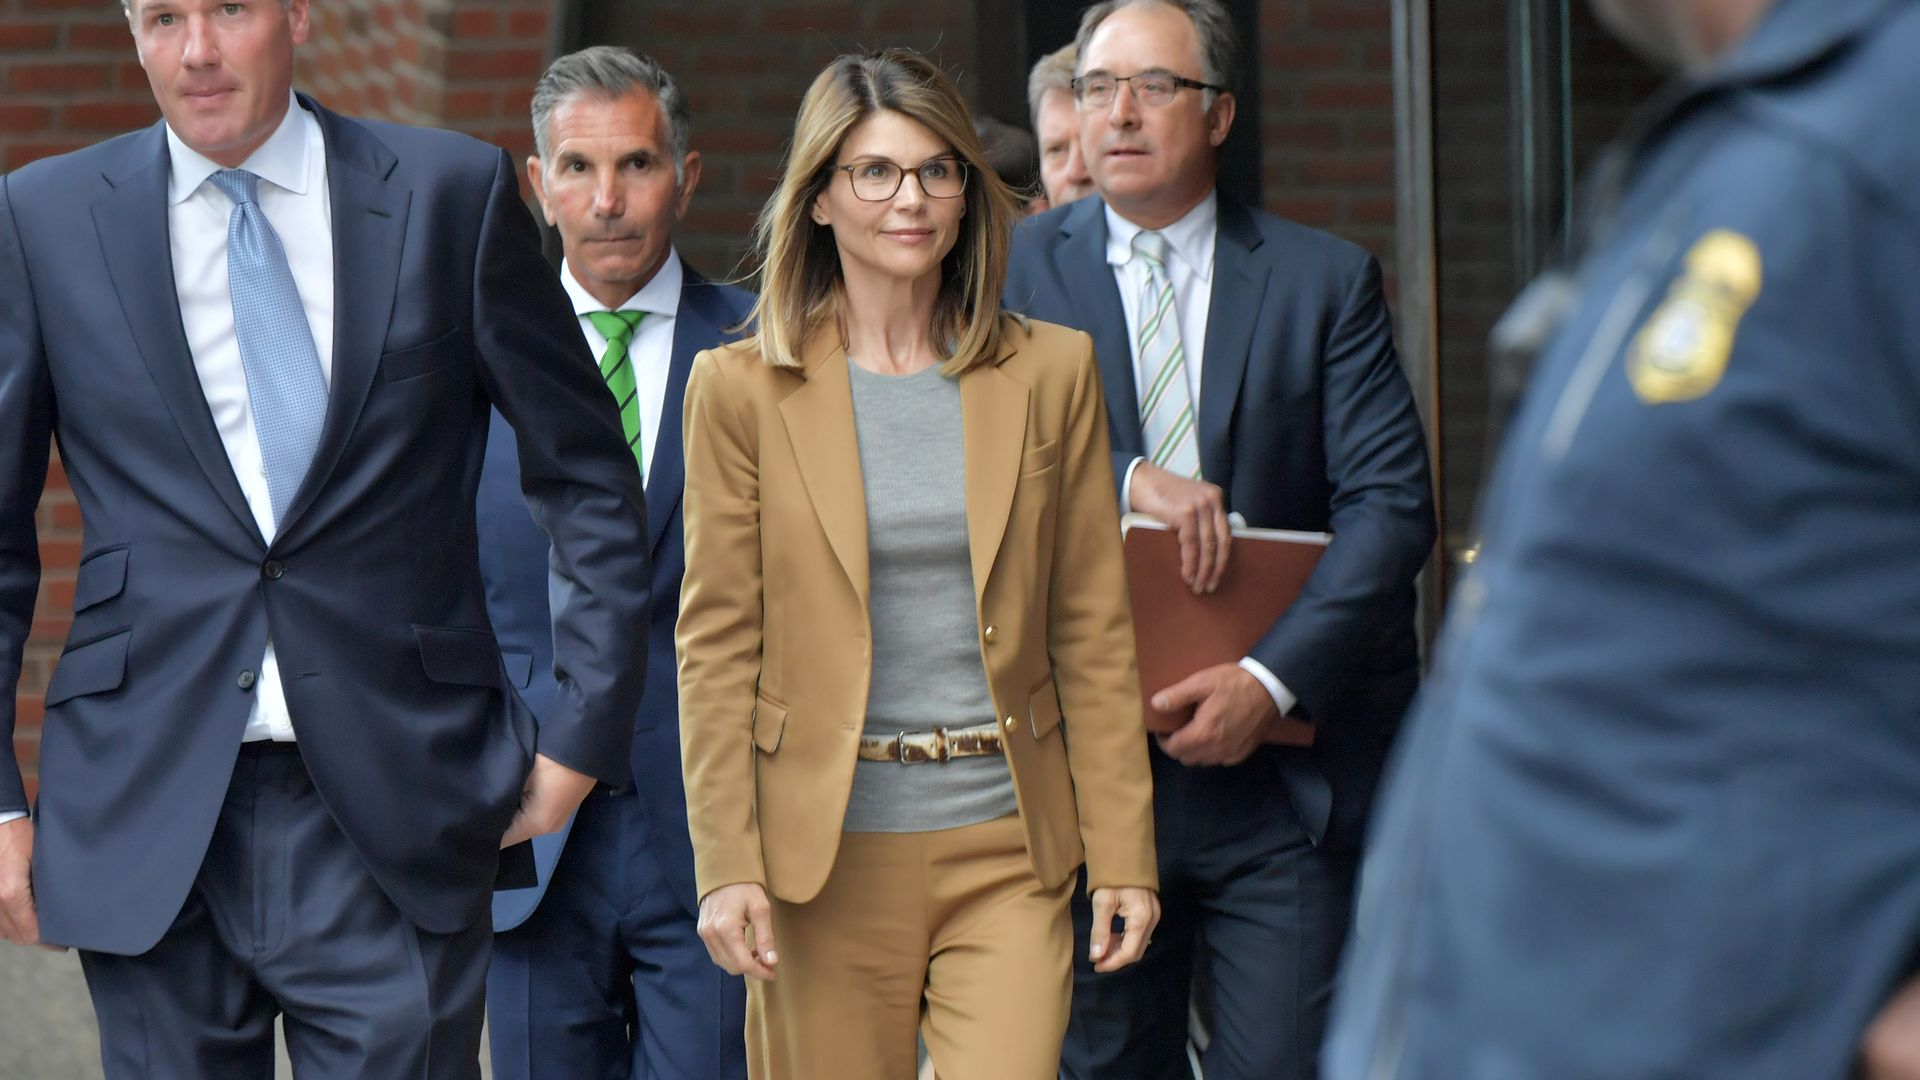 Lori Loughlin exits the John Joseph Moakley U.S. Courthouse after appearing in Federal Court to answer charges stemming from college admissions scandal on April 3, 2019 in Boston, Massachusetts